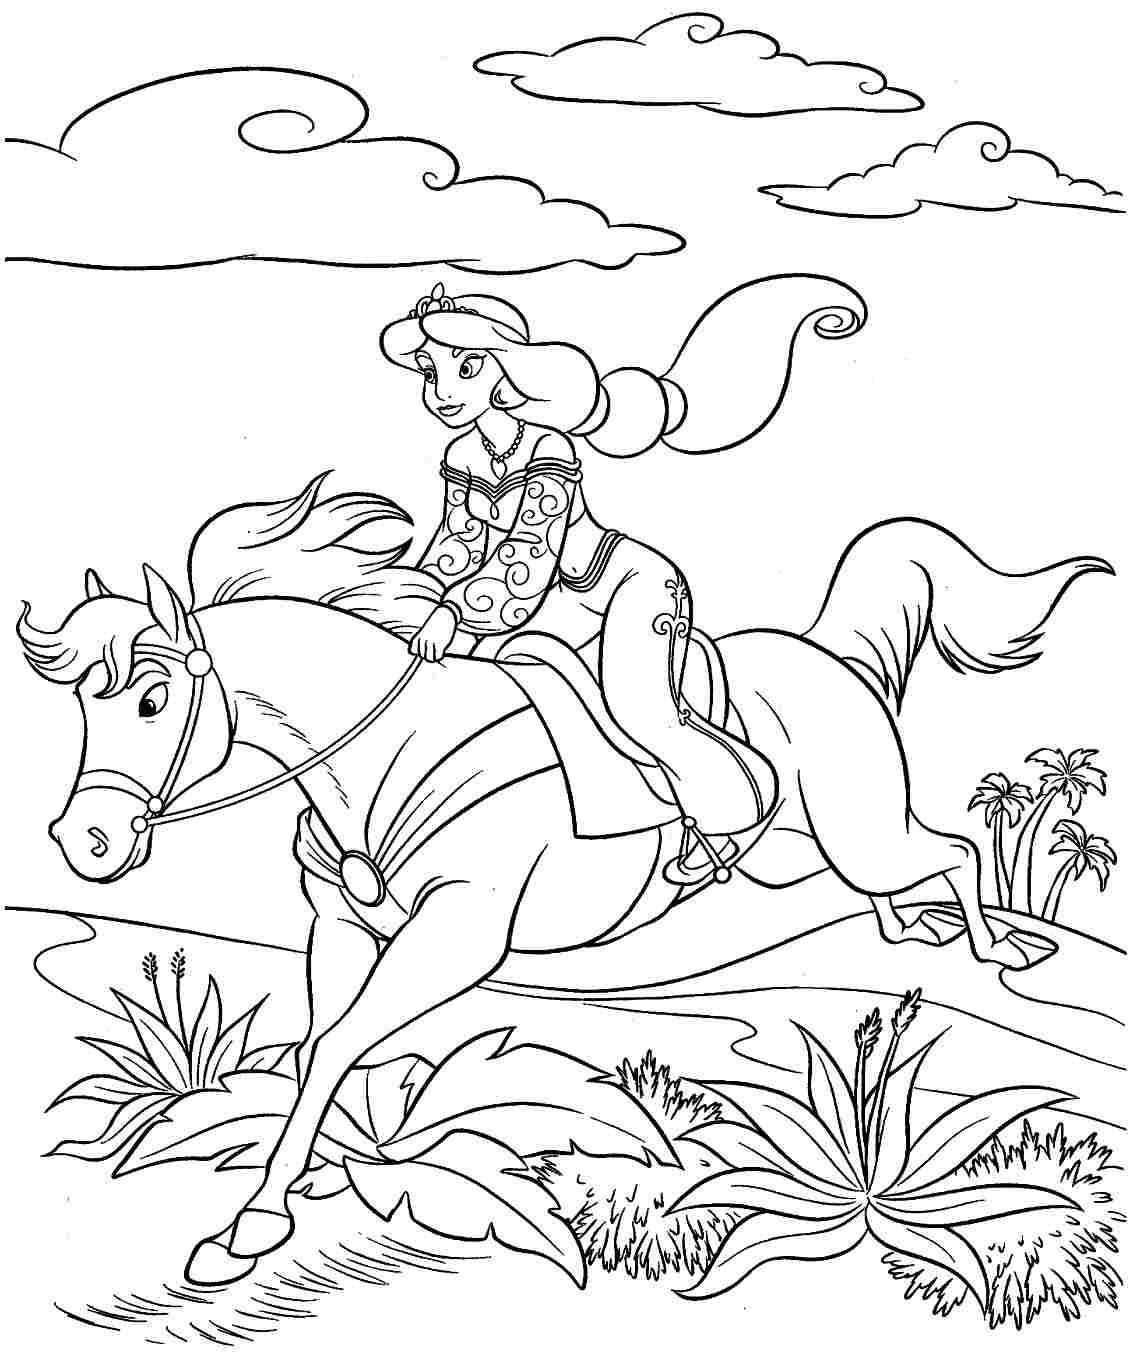 Coloring book disney princess - Coloring Pages Disney Princess Jasmine Printable For Kids Boys 55383